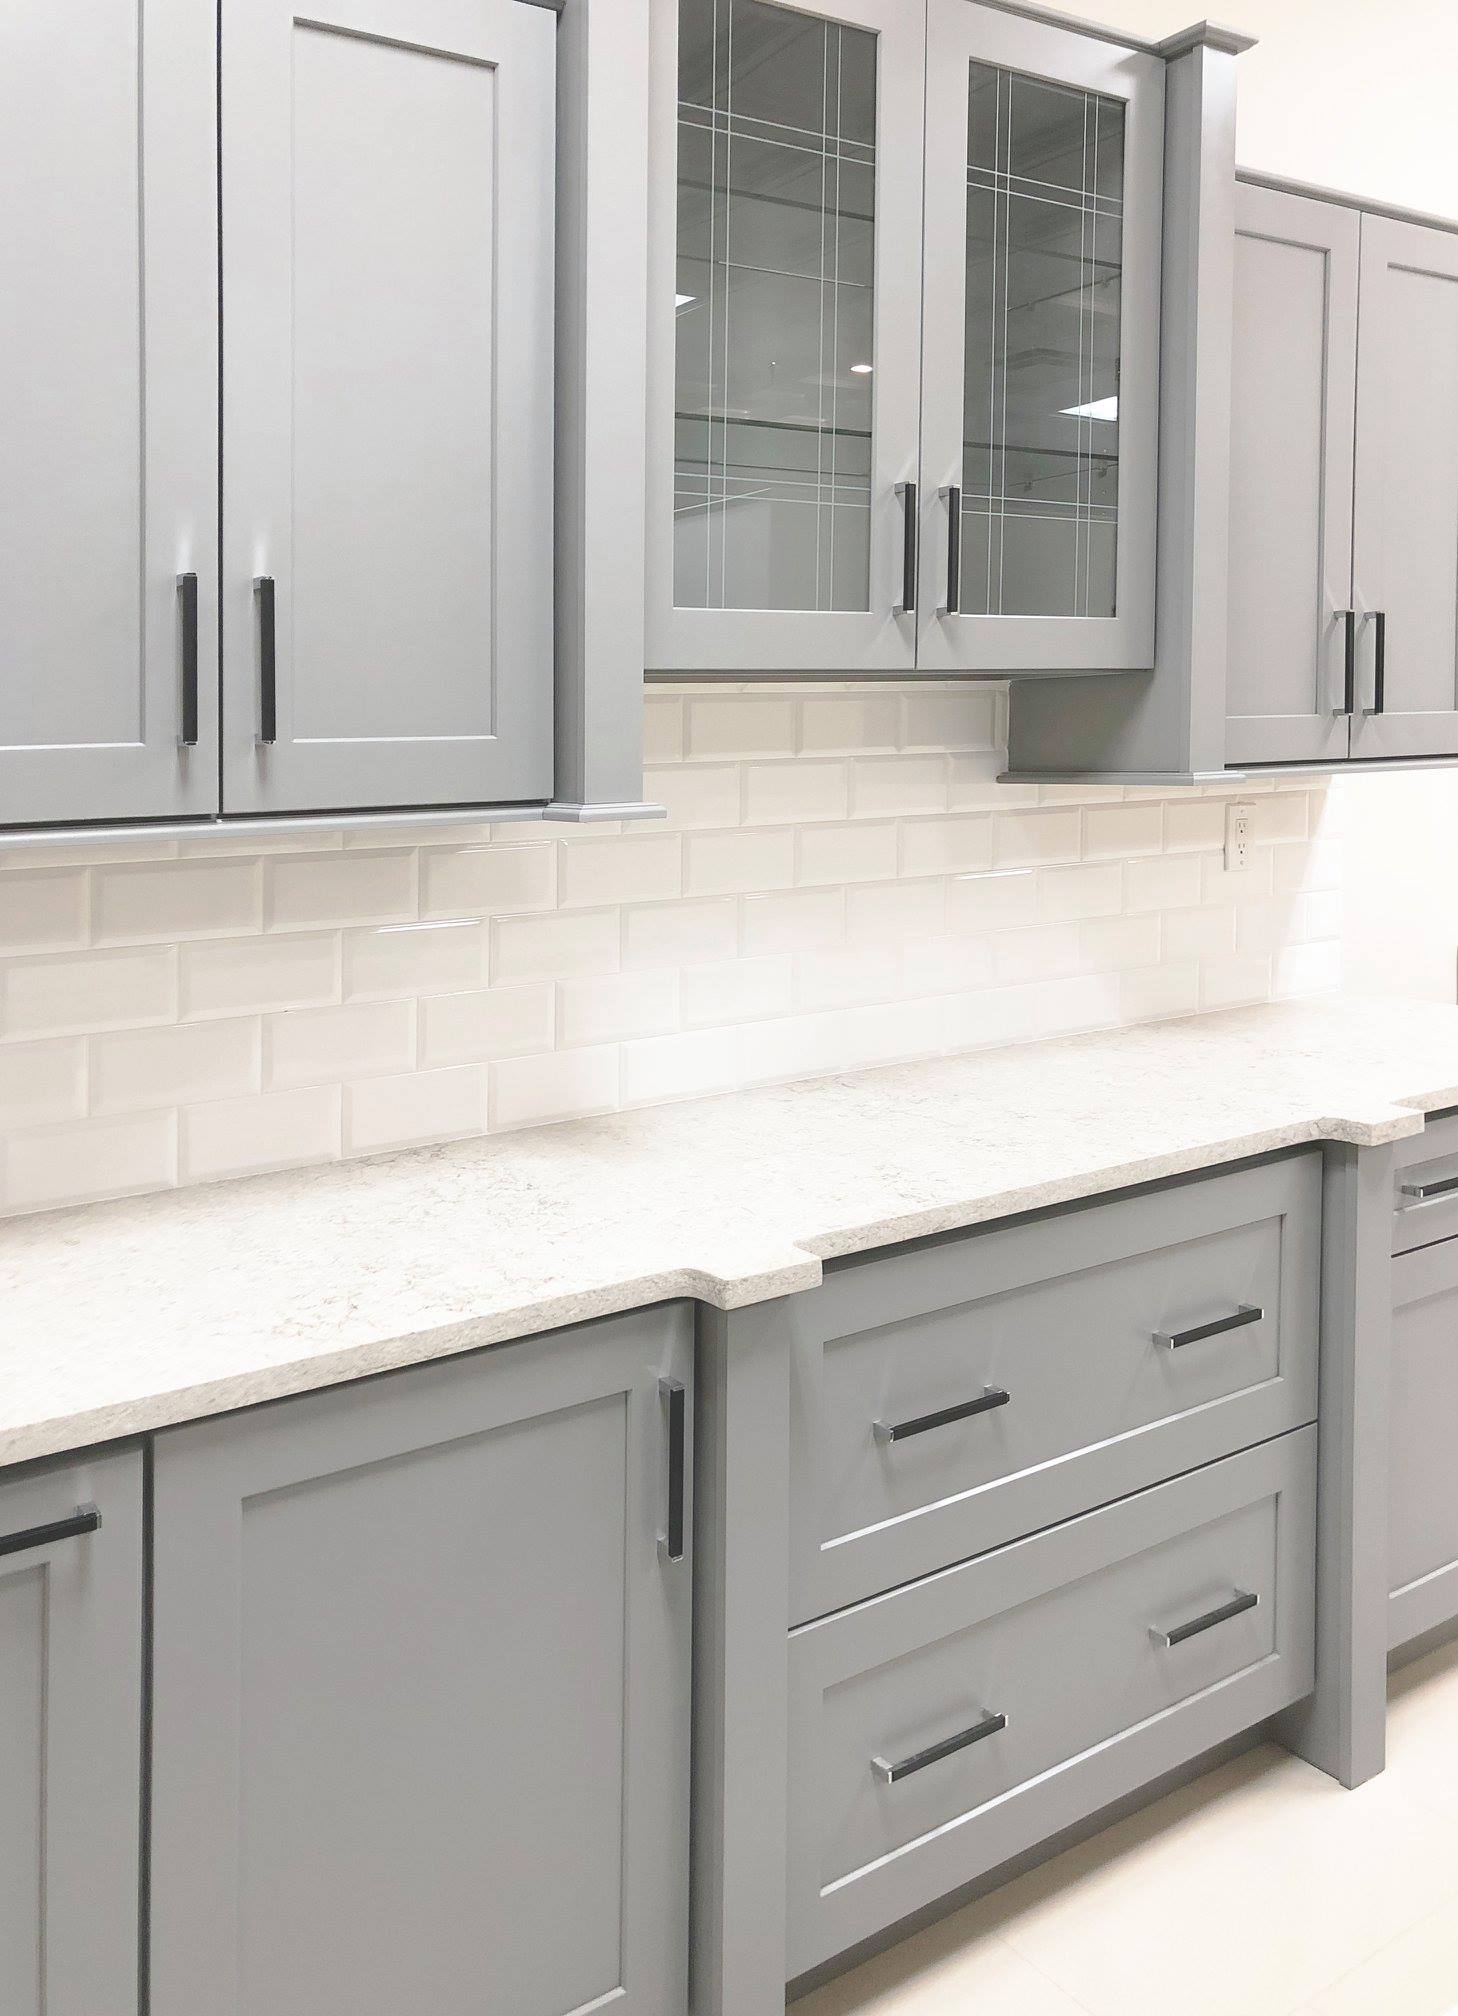 Kitchen Cabinet Showrooms On Long Island Jk3 Cabinets Westbury Hours Cabinets Matttroy